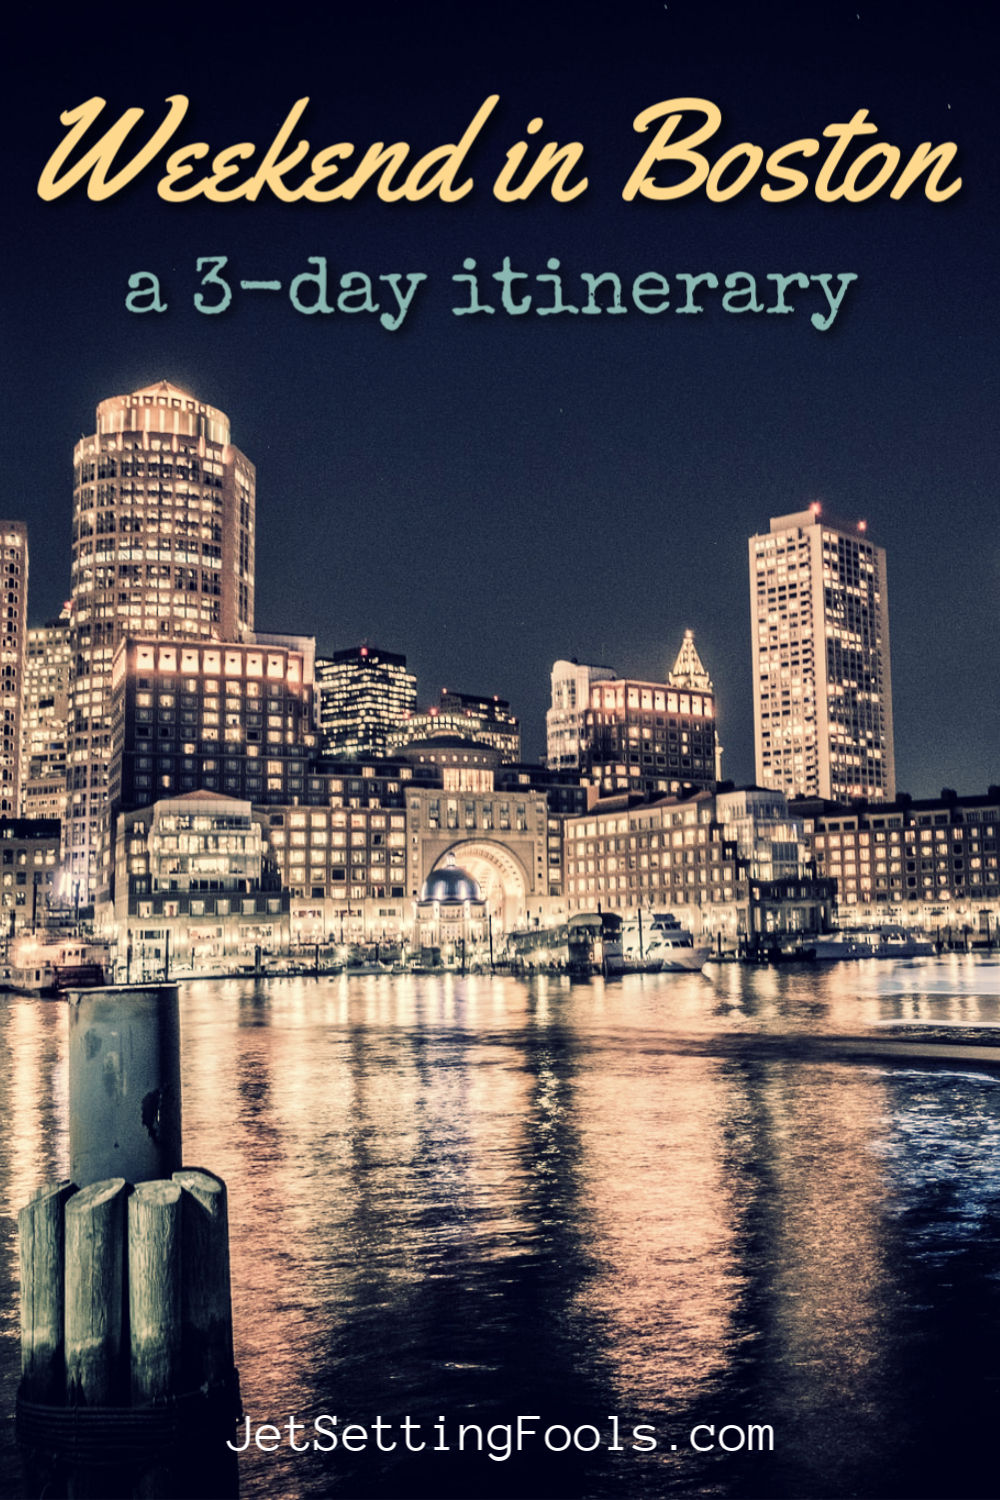 Weekend in Boston Itinerary by JetSettingFools.com